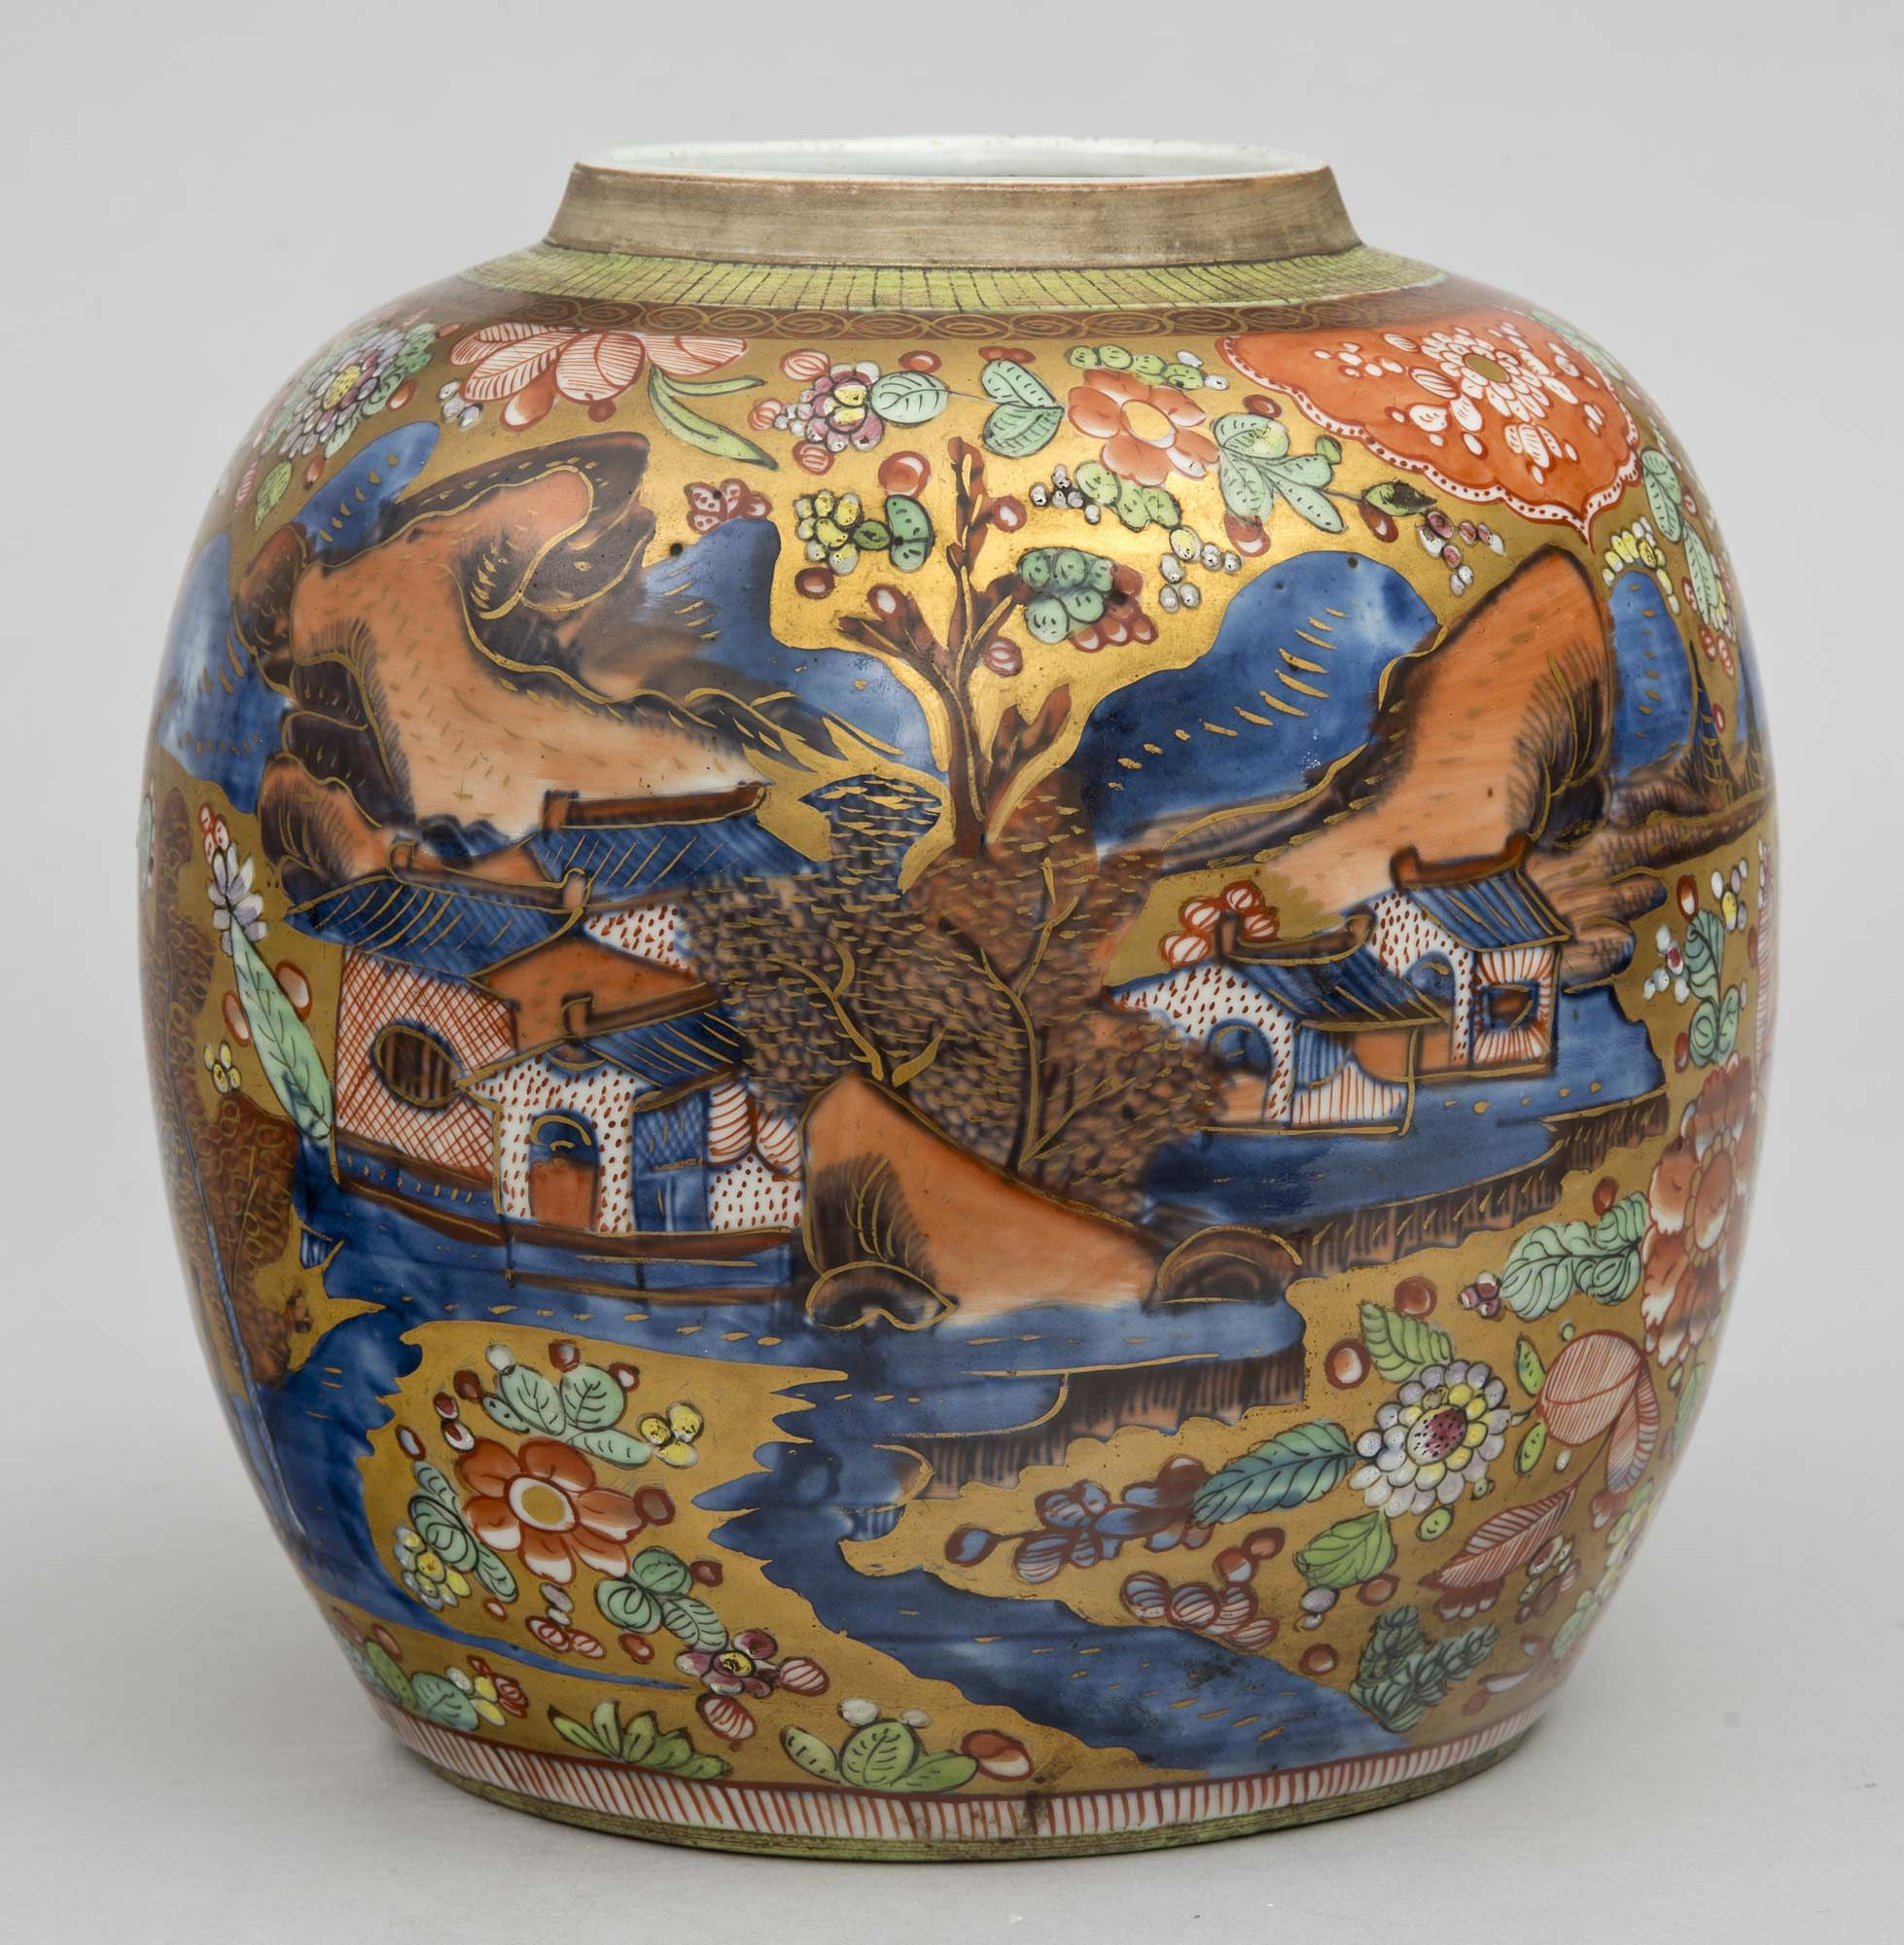 blue terracotta vase of chinese vases images pics a blue and white chinese phoenix tail vase inside chinese vases images stock chinese qianlong period blue and white ginger jar that has been of